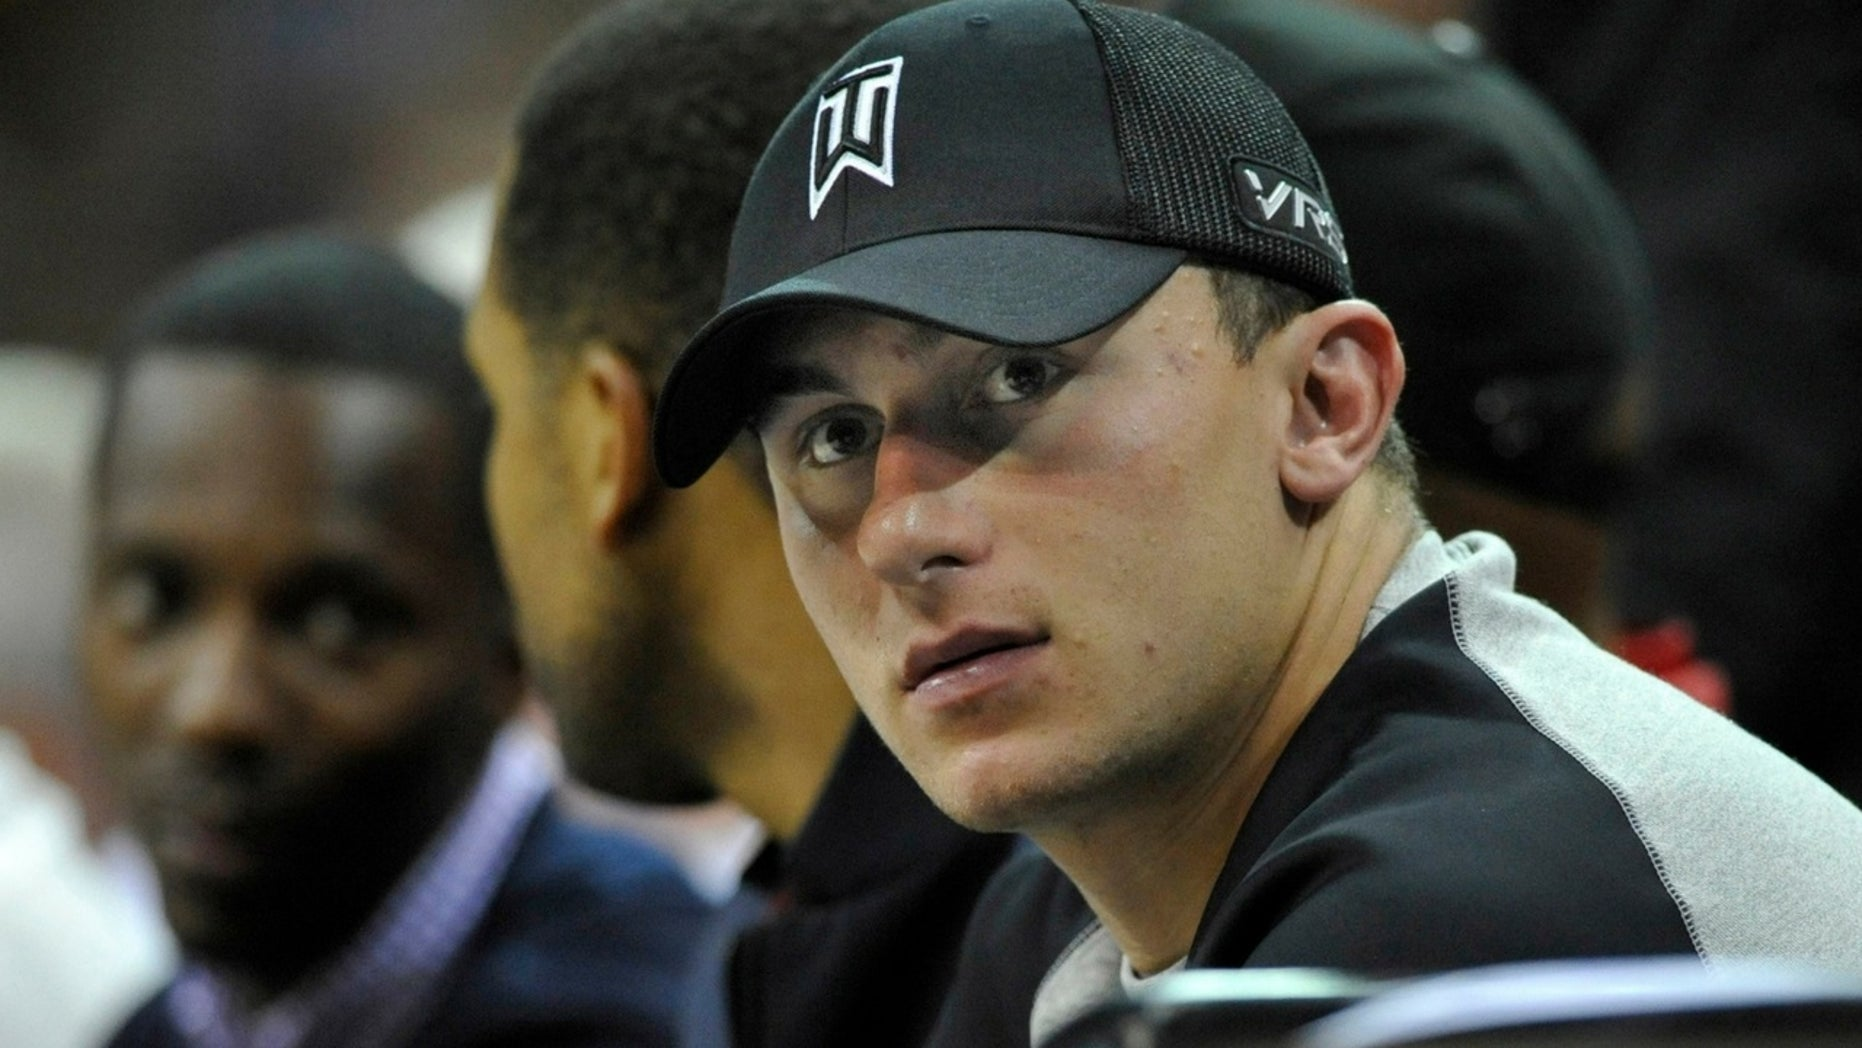 """Johnny Manziel was reportedly being considered for """"Dancing with the Stars"""" but was dropped after he was deemed """"too controversial."""""""